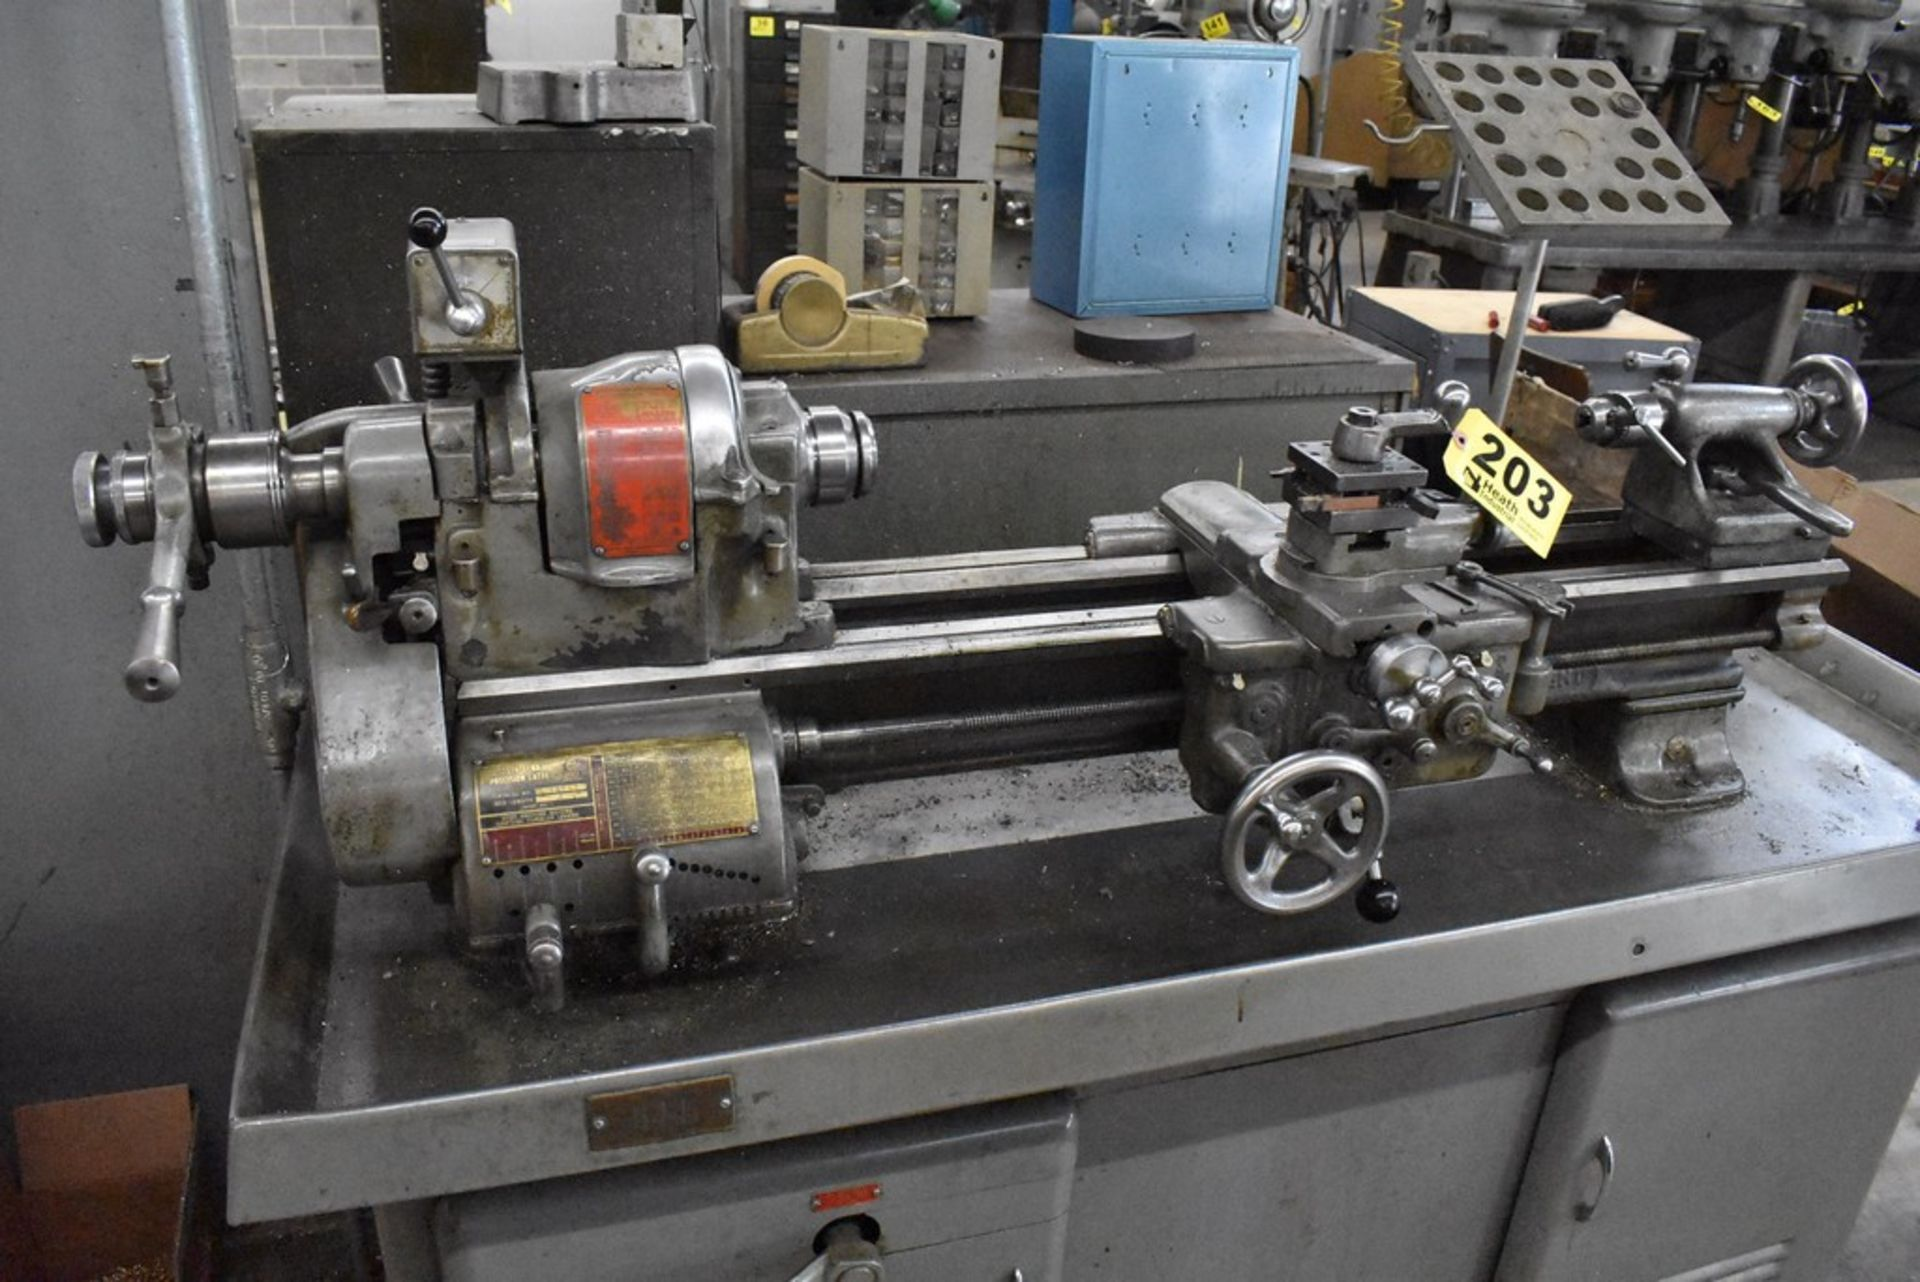 """SOUTH BEND 10""""X30"""" CABINET BASE TOOL ROOM LATHE, S/N 16711RKX12, WITH COLLET CLOSER, 4-WAY TOOL - Image 7 of 13"""